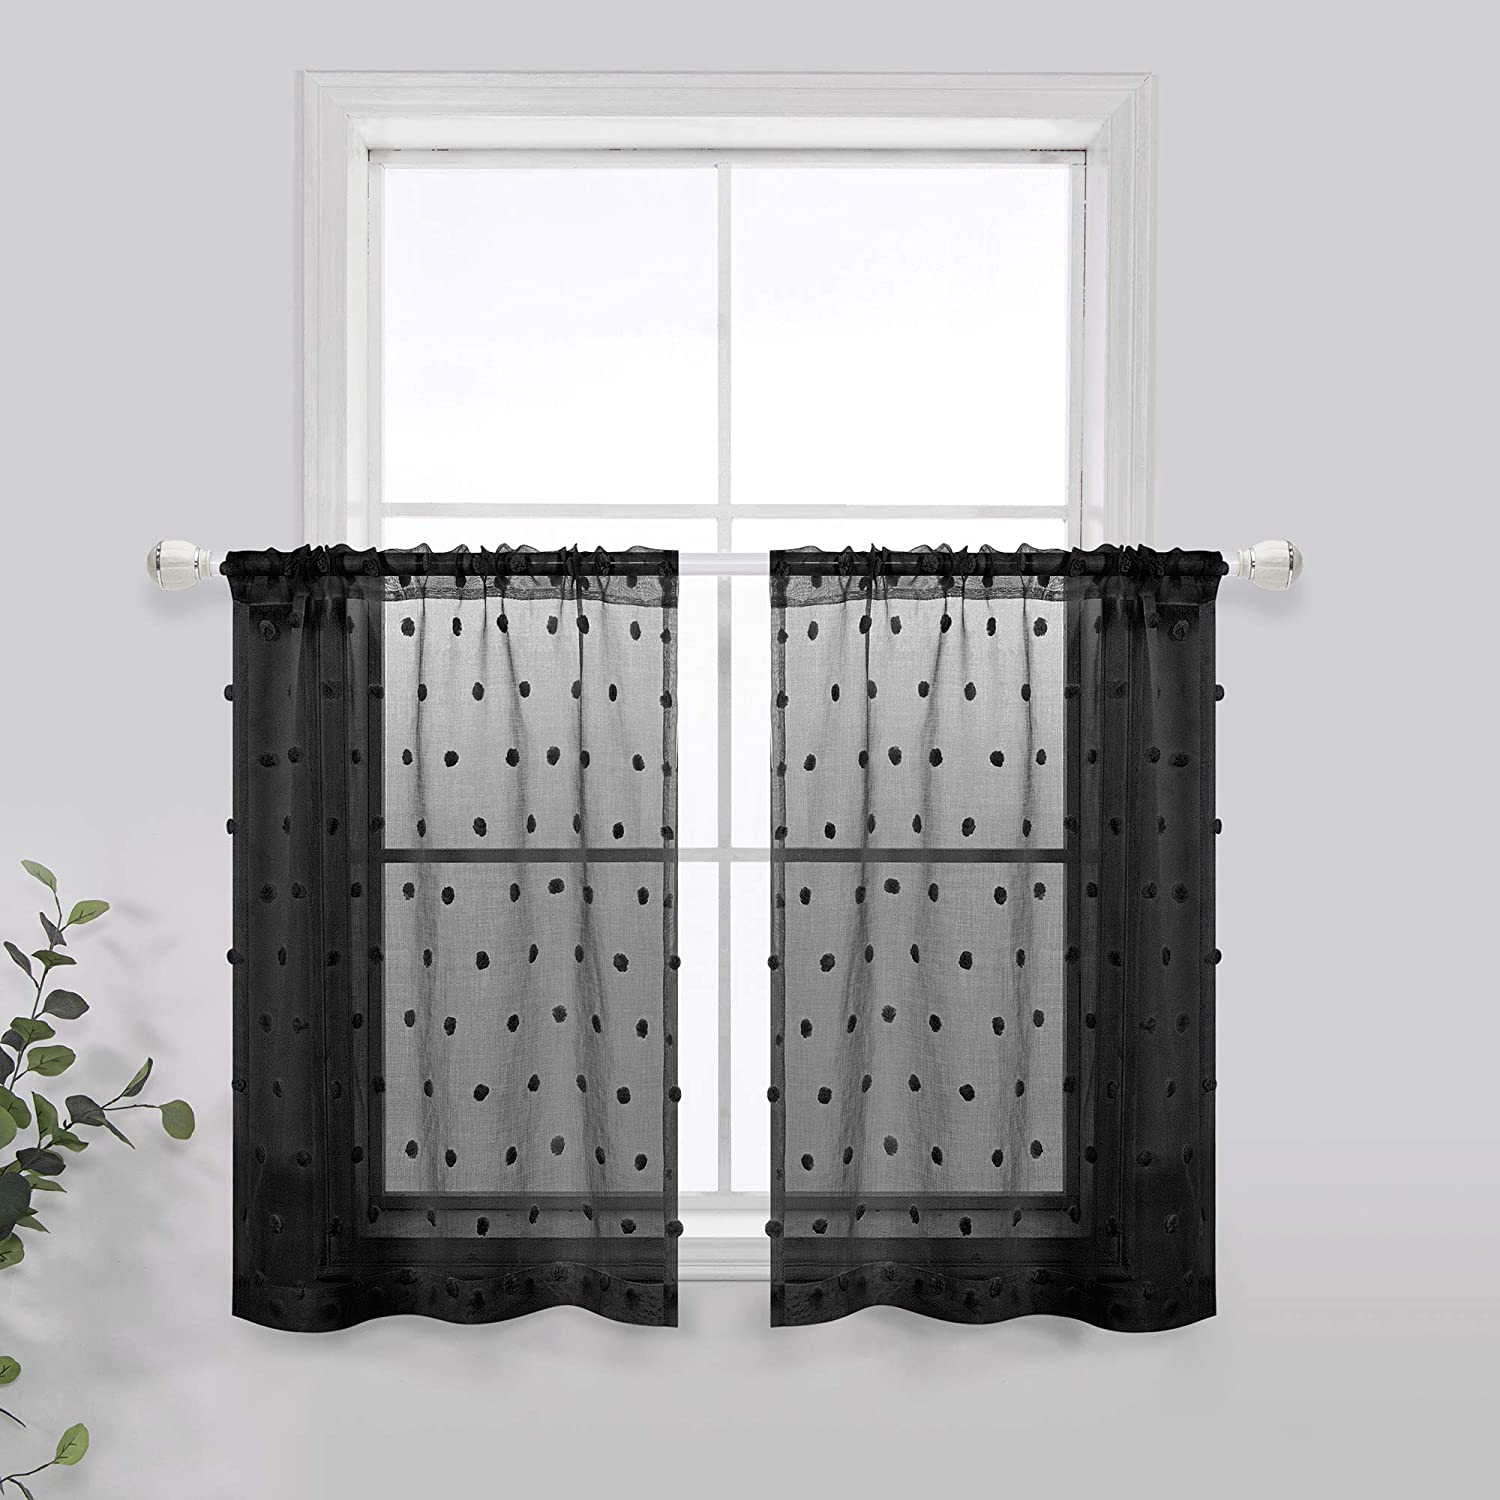 Short Curtains 24 Inch Length for Kitchen Windows Set 2 Pack Sheer Pole Pocket Little Pom Pom Decor Textured Small Half Curtain Valances Black Kitchen Tiers 24 Length for Bathroom Camper 30x24 Long